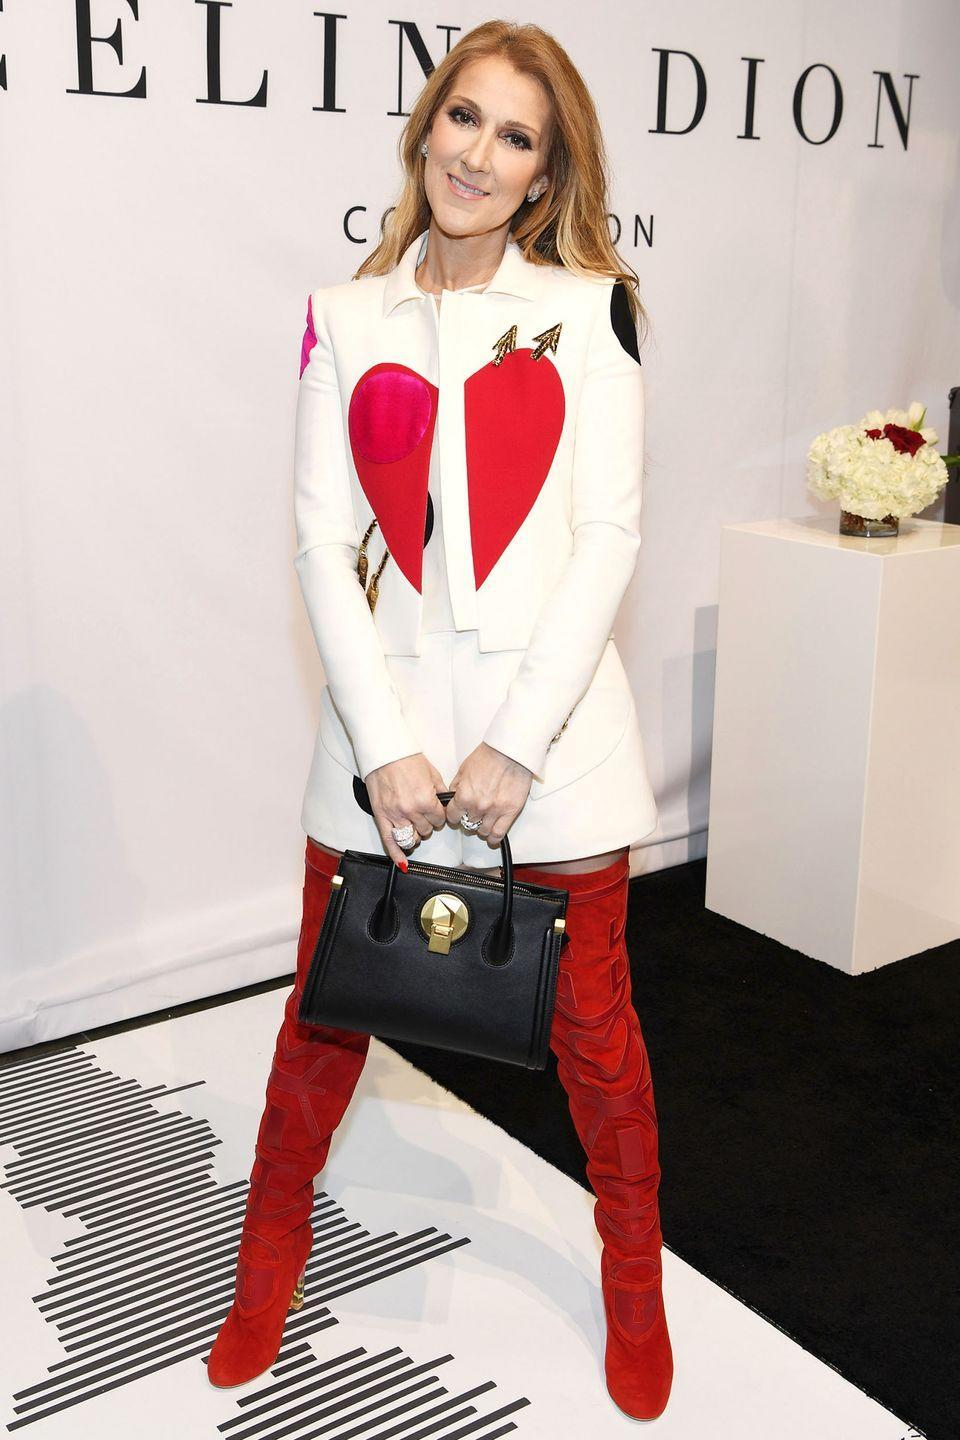 <p>In an Elsa Schiaparelli couture look and red suede over-the-knee boots while promoting her accessories collection in Las Vegas. </p>